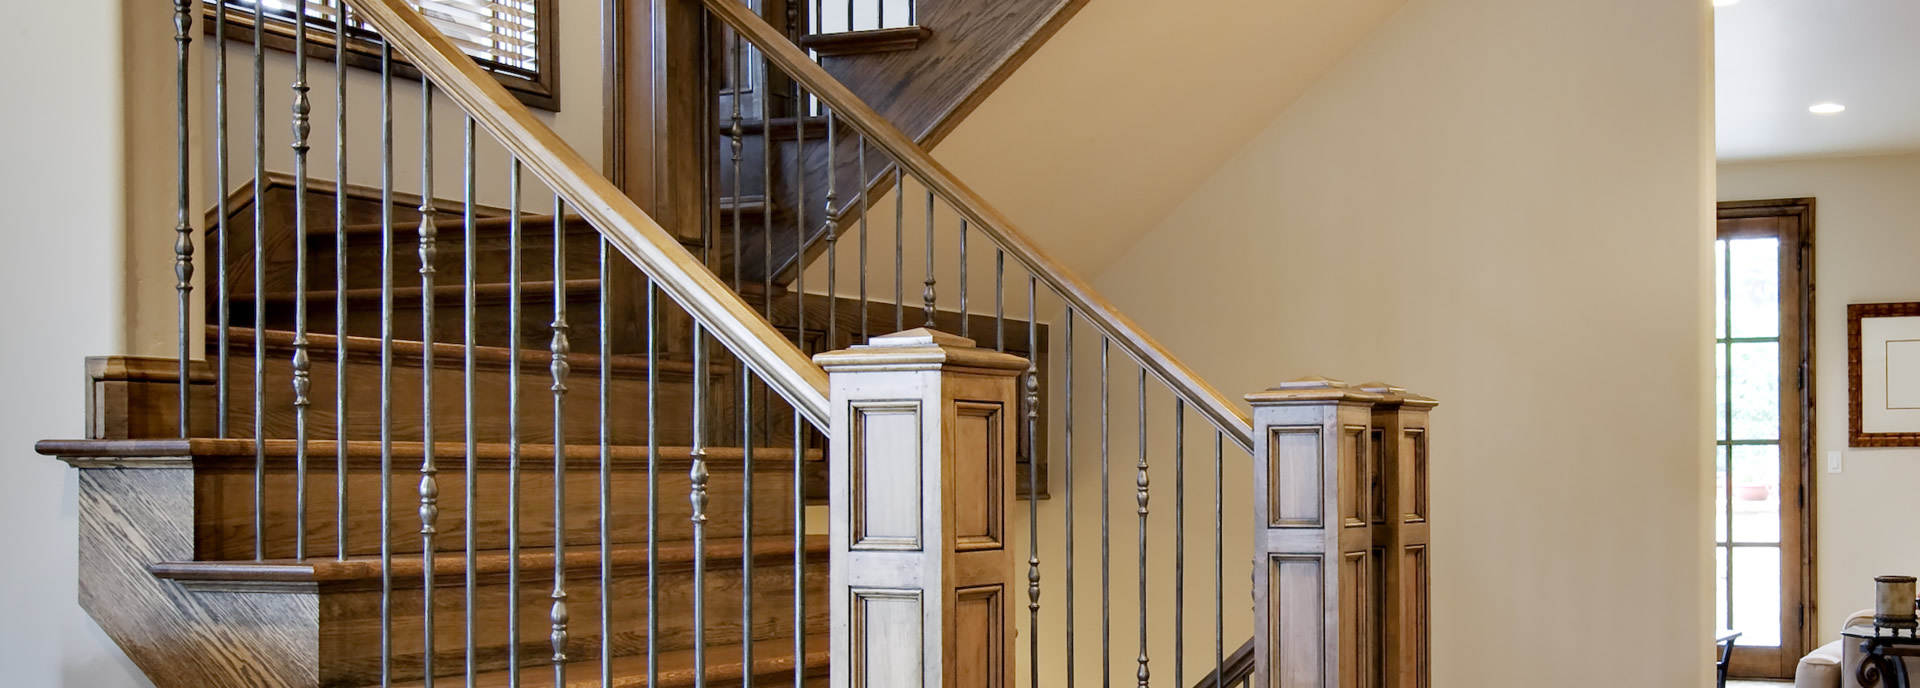 Capabilities in Stair Design for Architects, General Contractors and Home Builders Alpharetta, GA